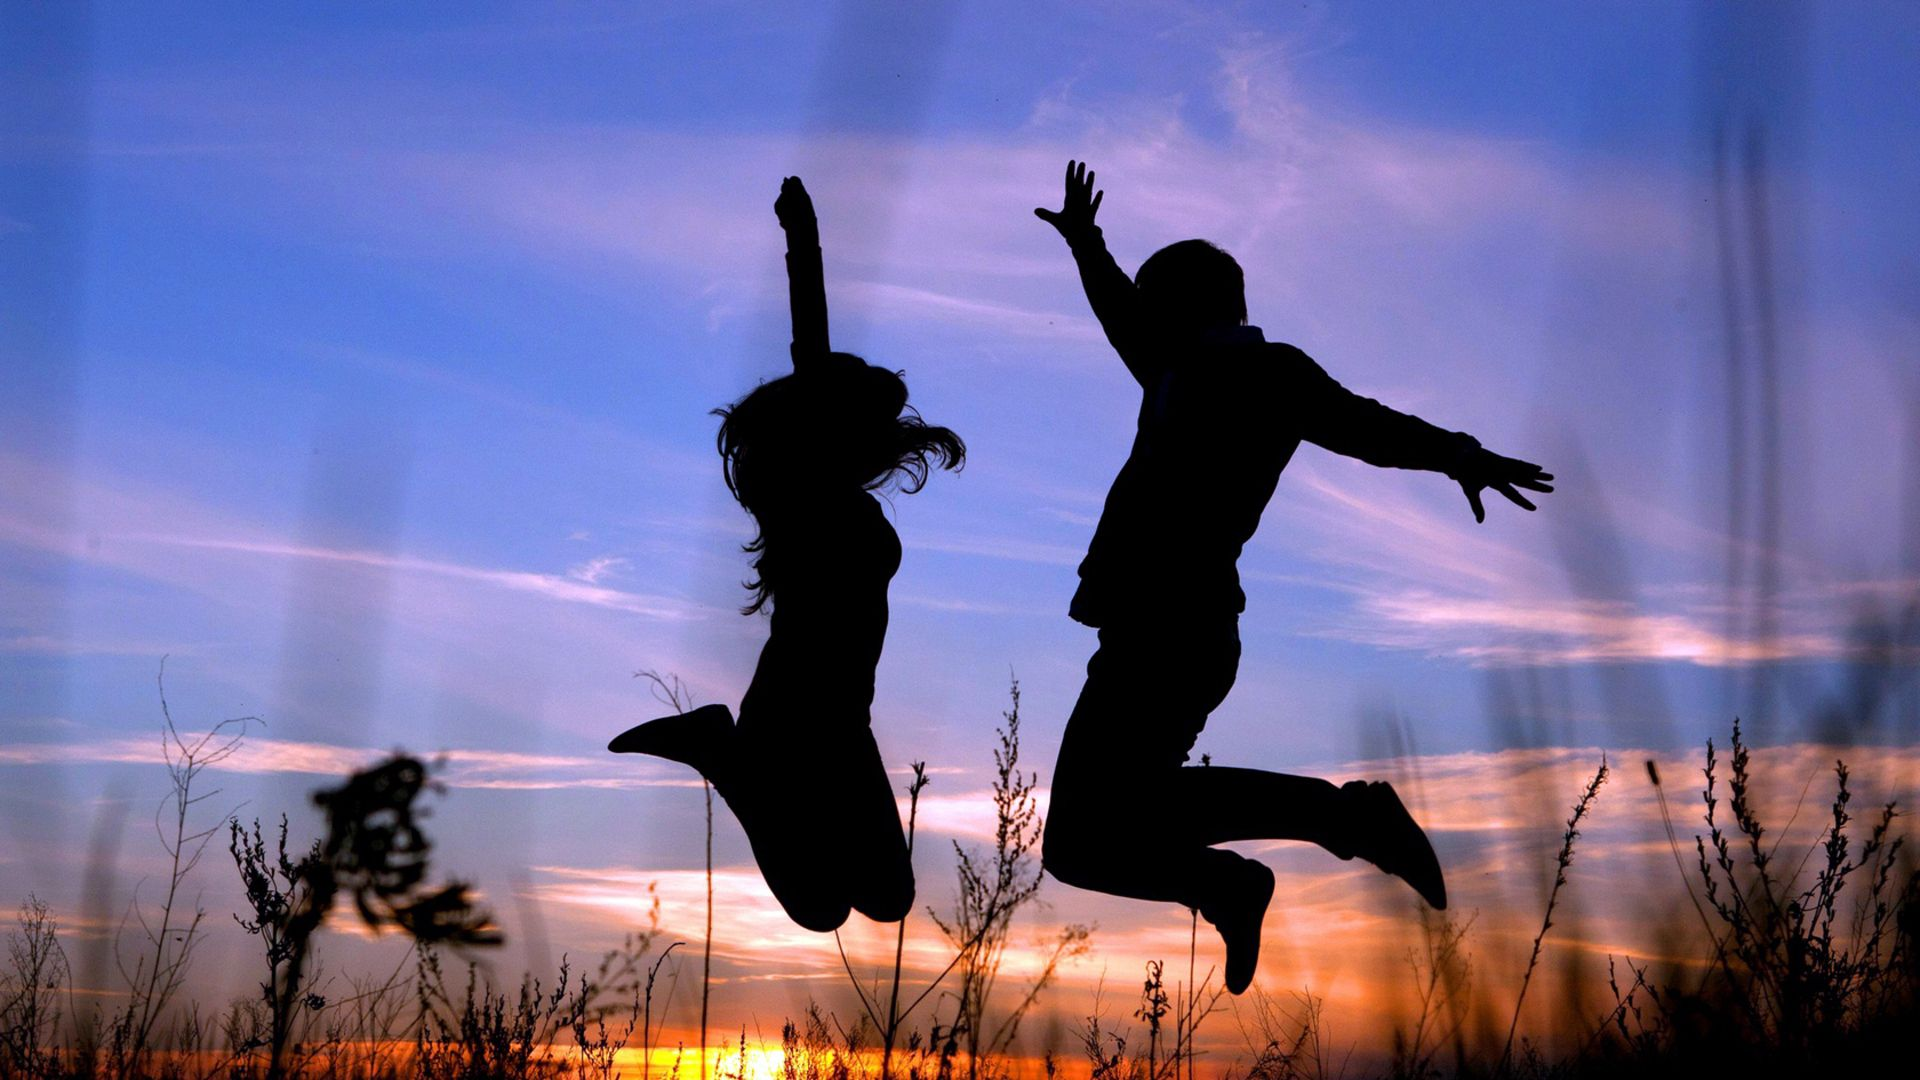 133637 Screensavers and Wallpapers Couple for phone. Download Grass, Night, Dark, Silhouette, Couple, Pair, Shadow, Bounce, Jump pictures for free